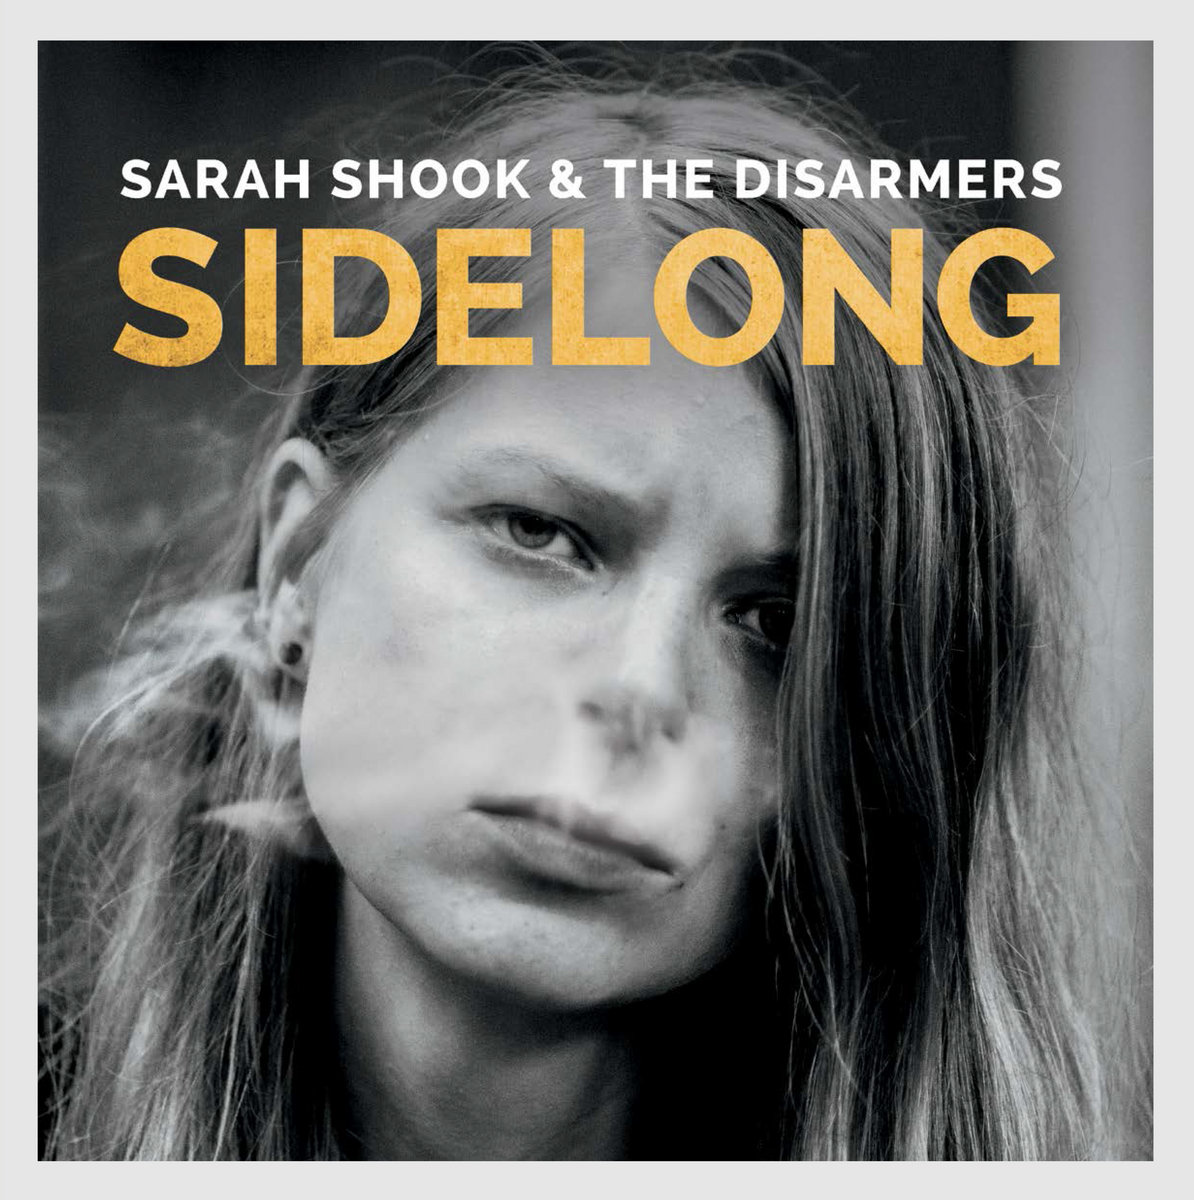 The Nail | Sarah Shook & the Disarmers